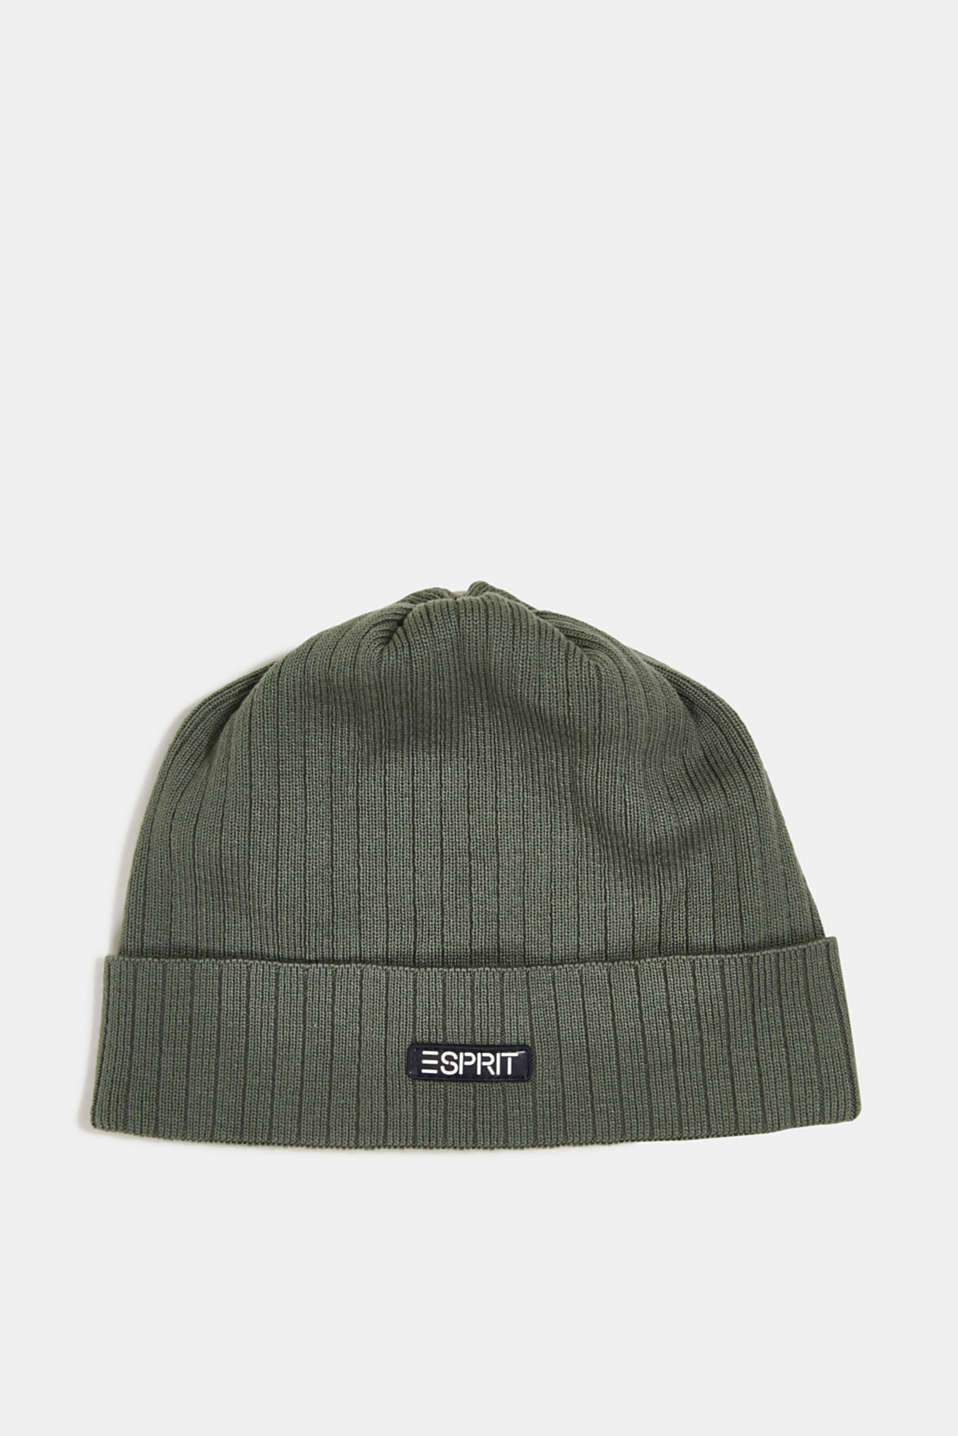 Esprit - fashion cap